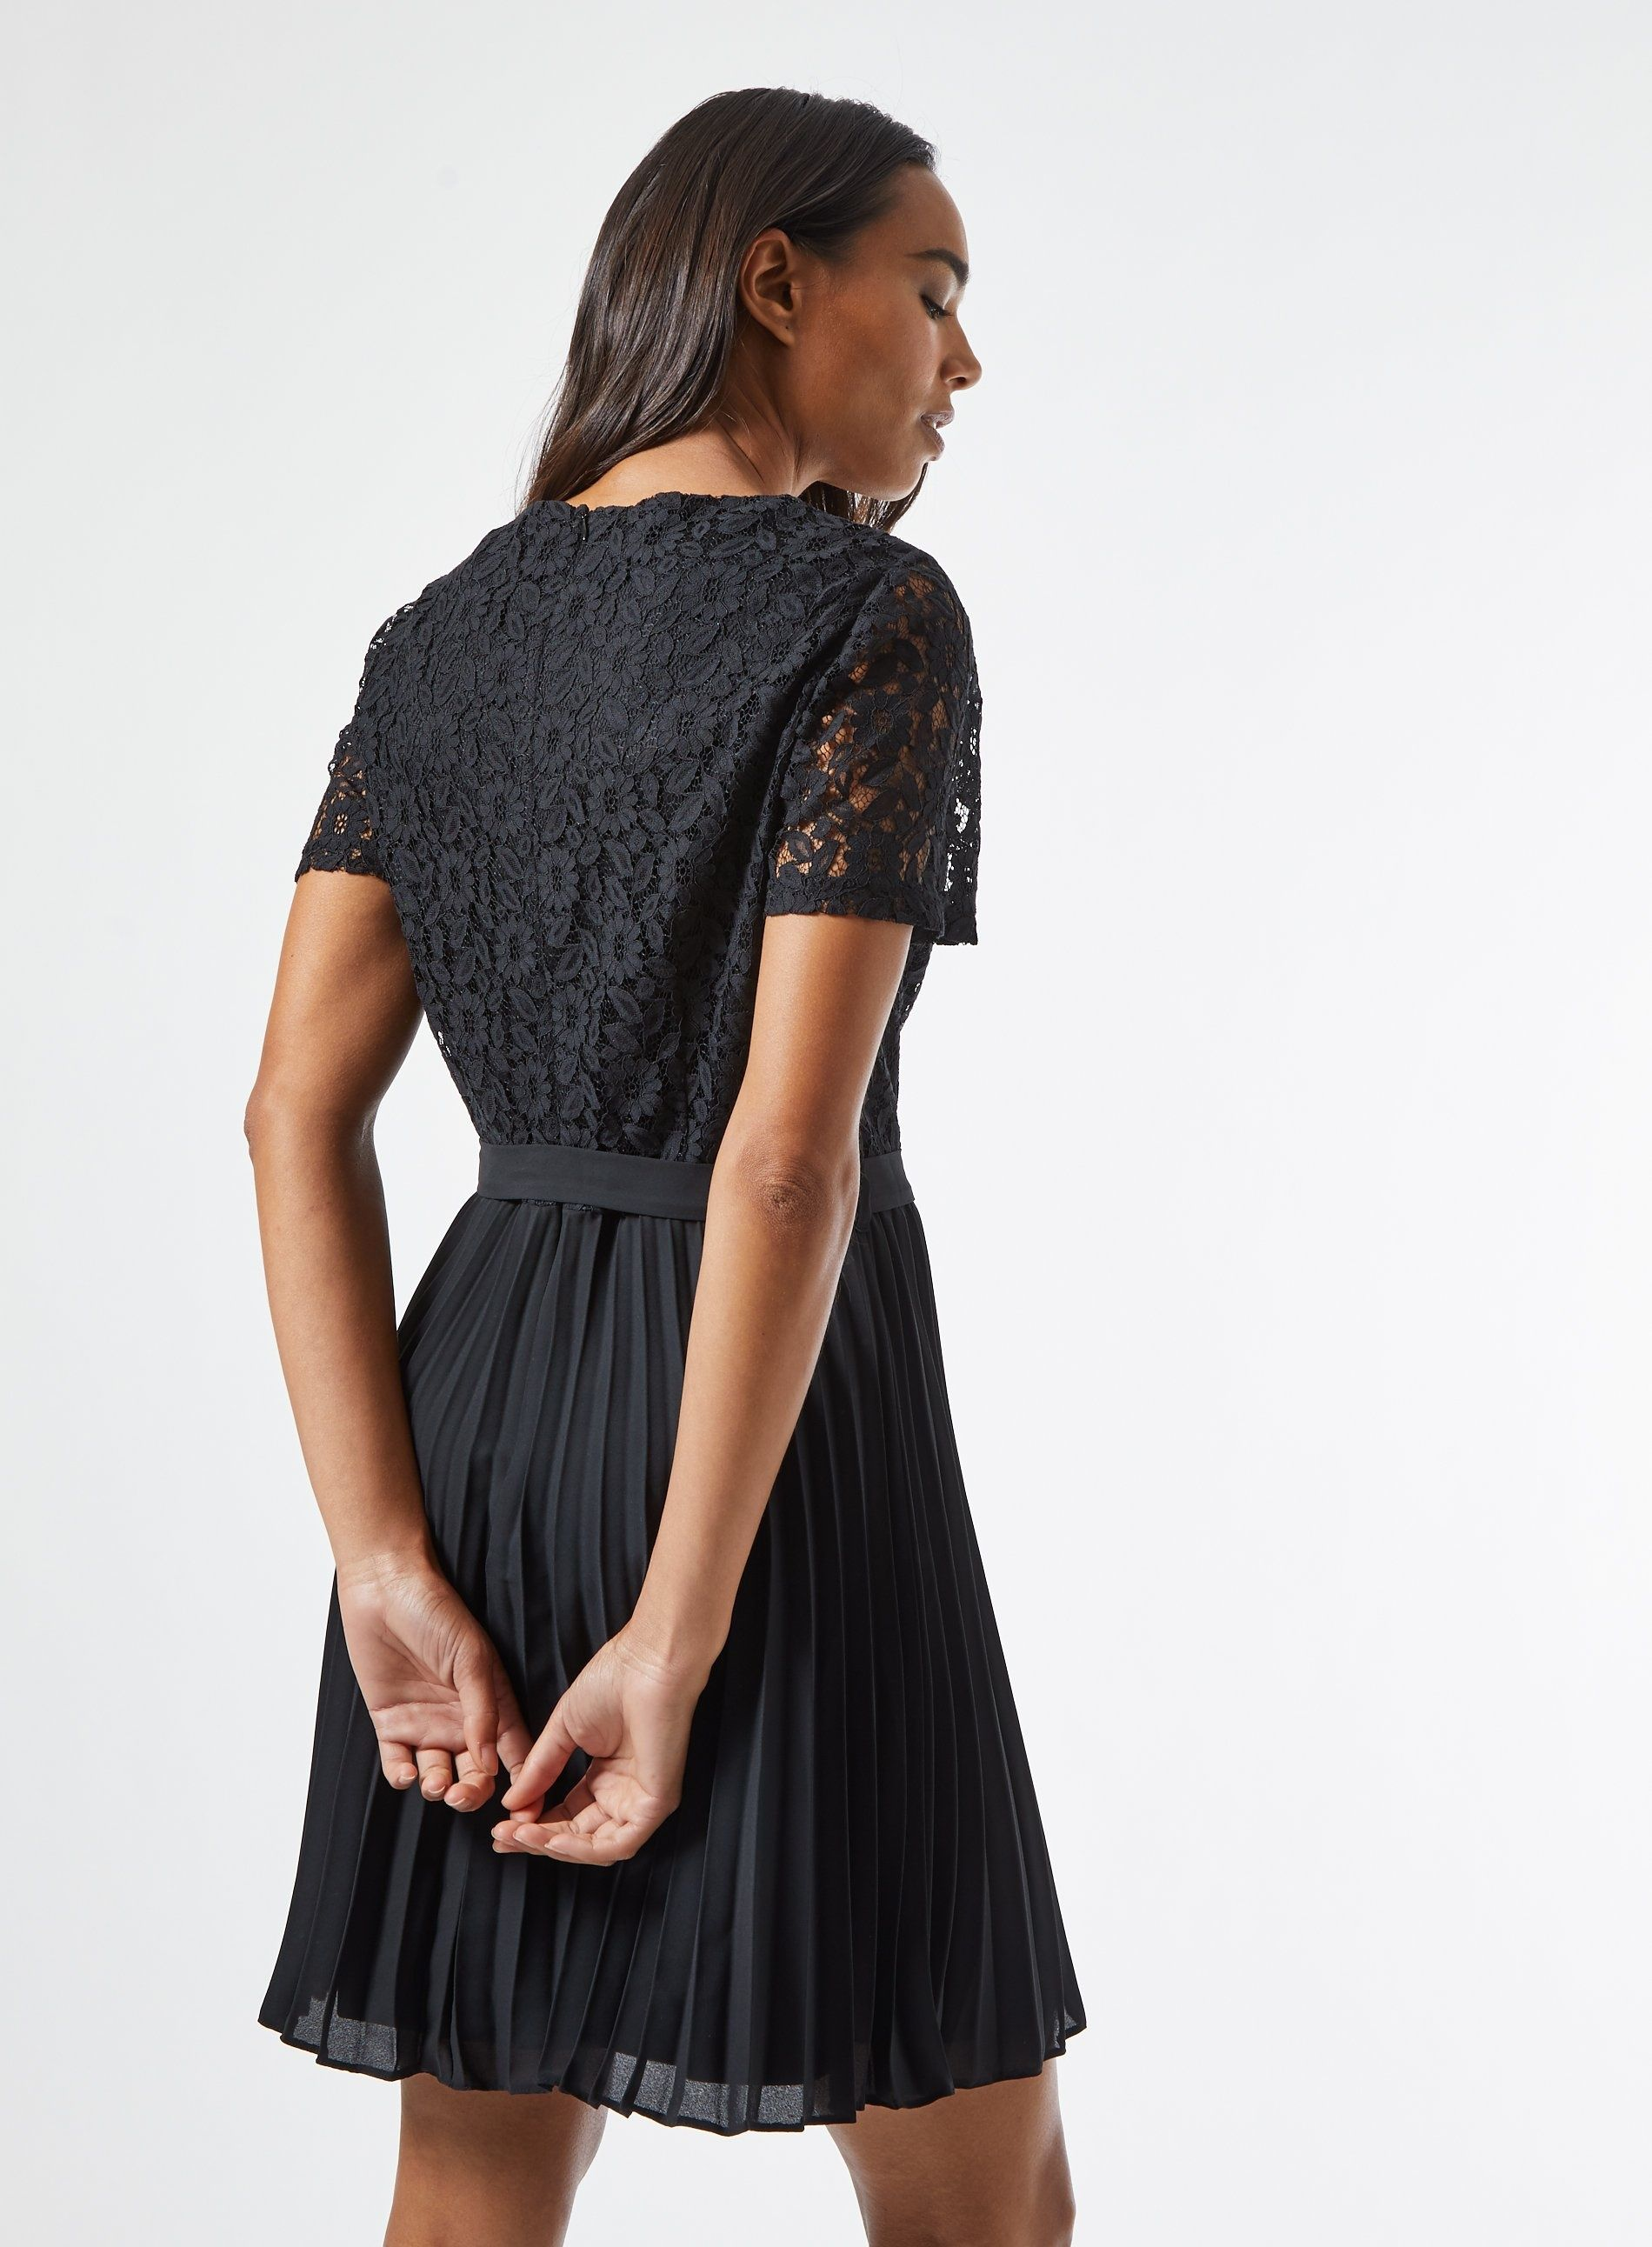 Dorothy Perkins Womens Black Mini Lace Dress Short Sleeve Round Neck Loose Fit